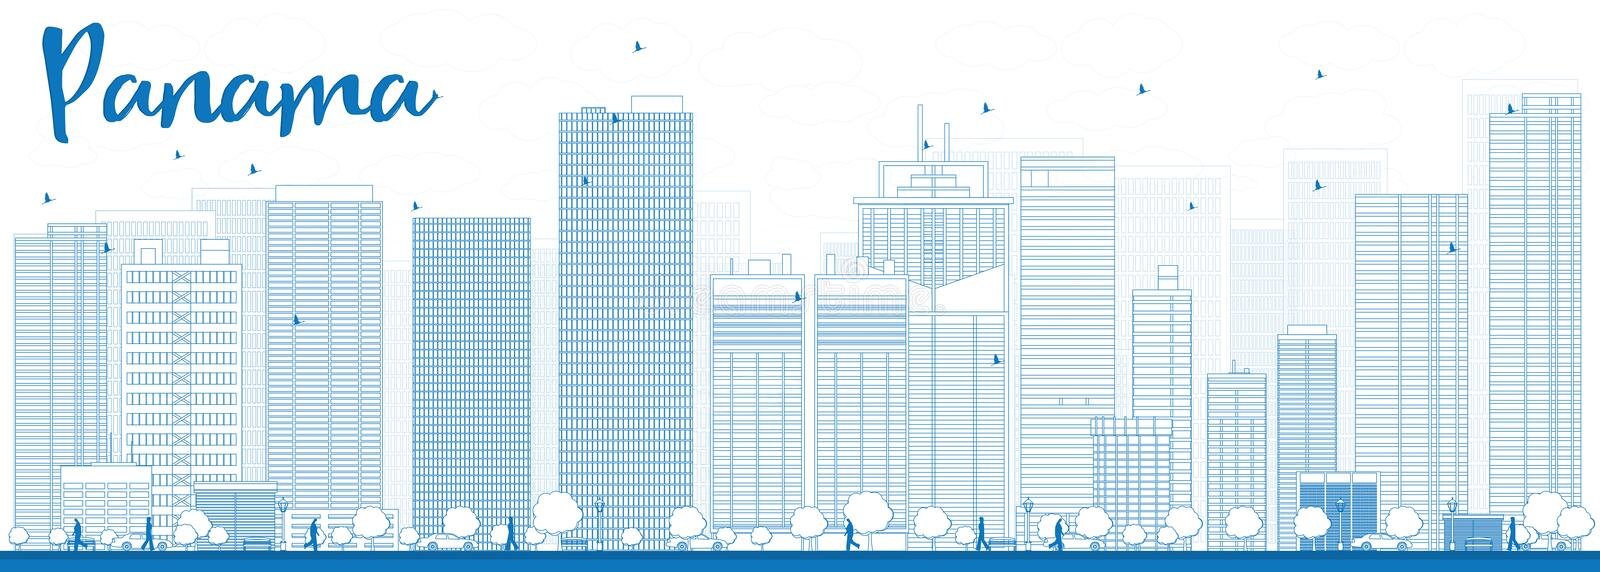 Outline Panama City skyline with blue skyscrapers stock illustration